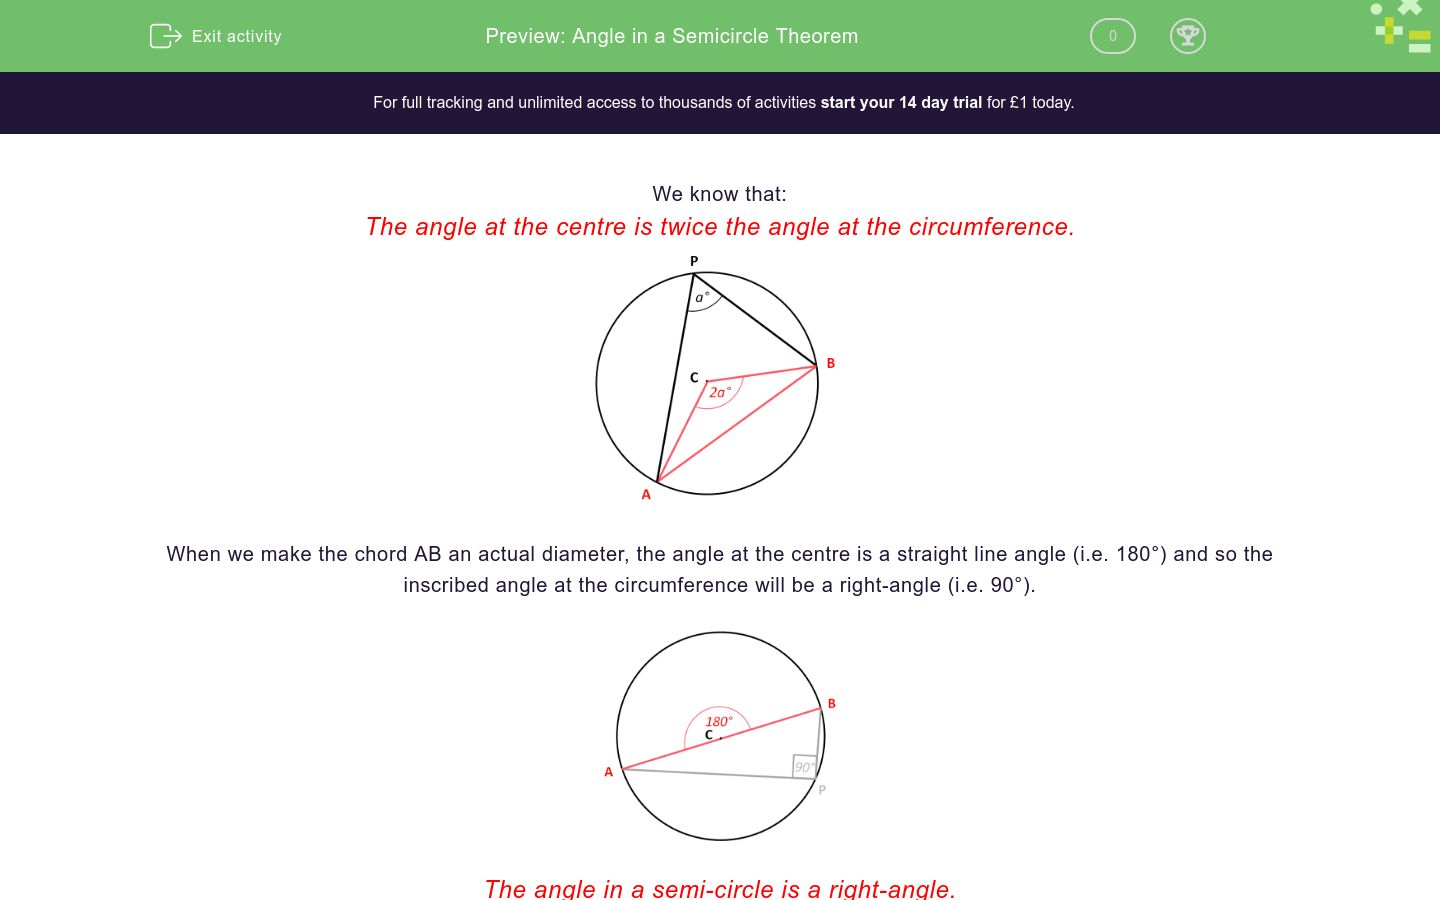 'Angle in a Semicircle Theorem' worksheet